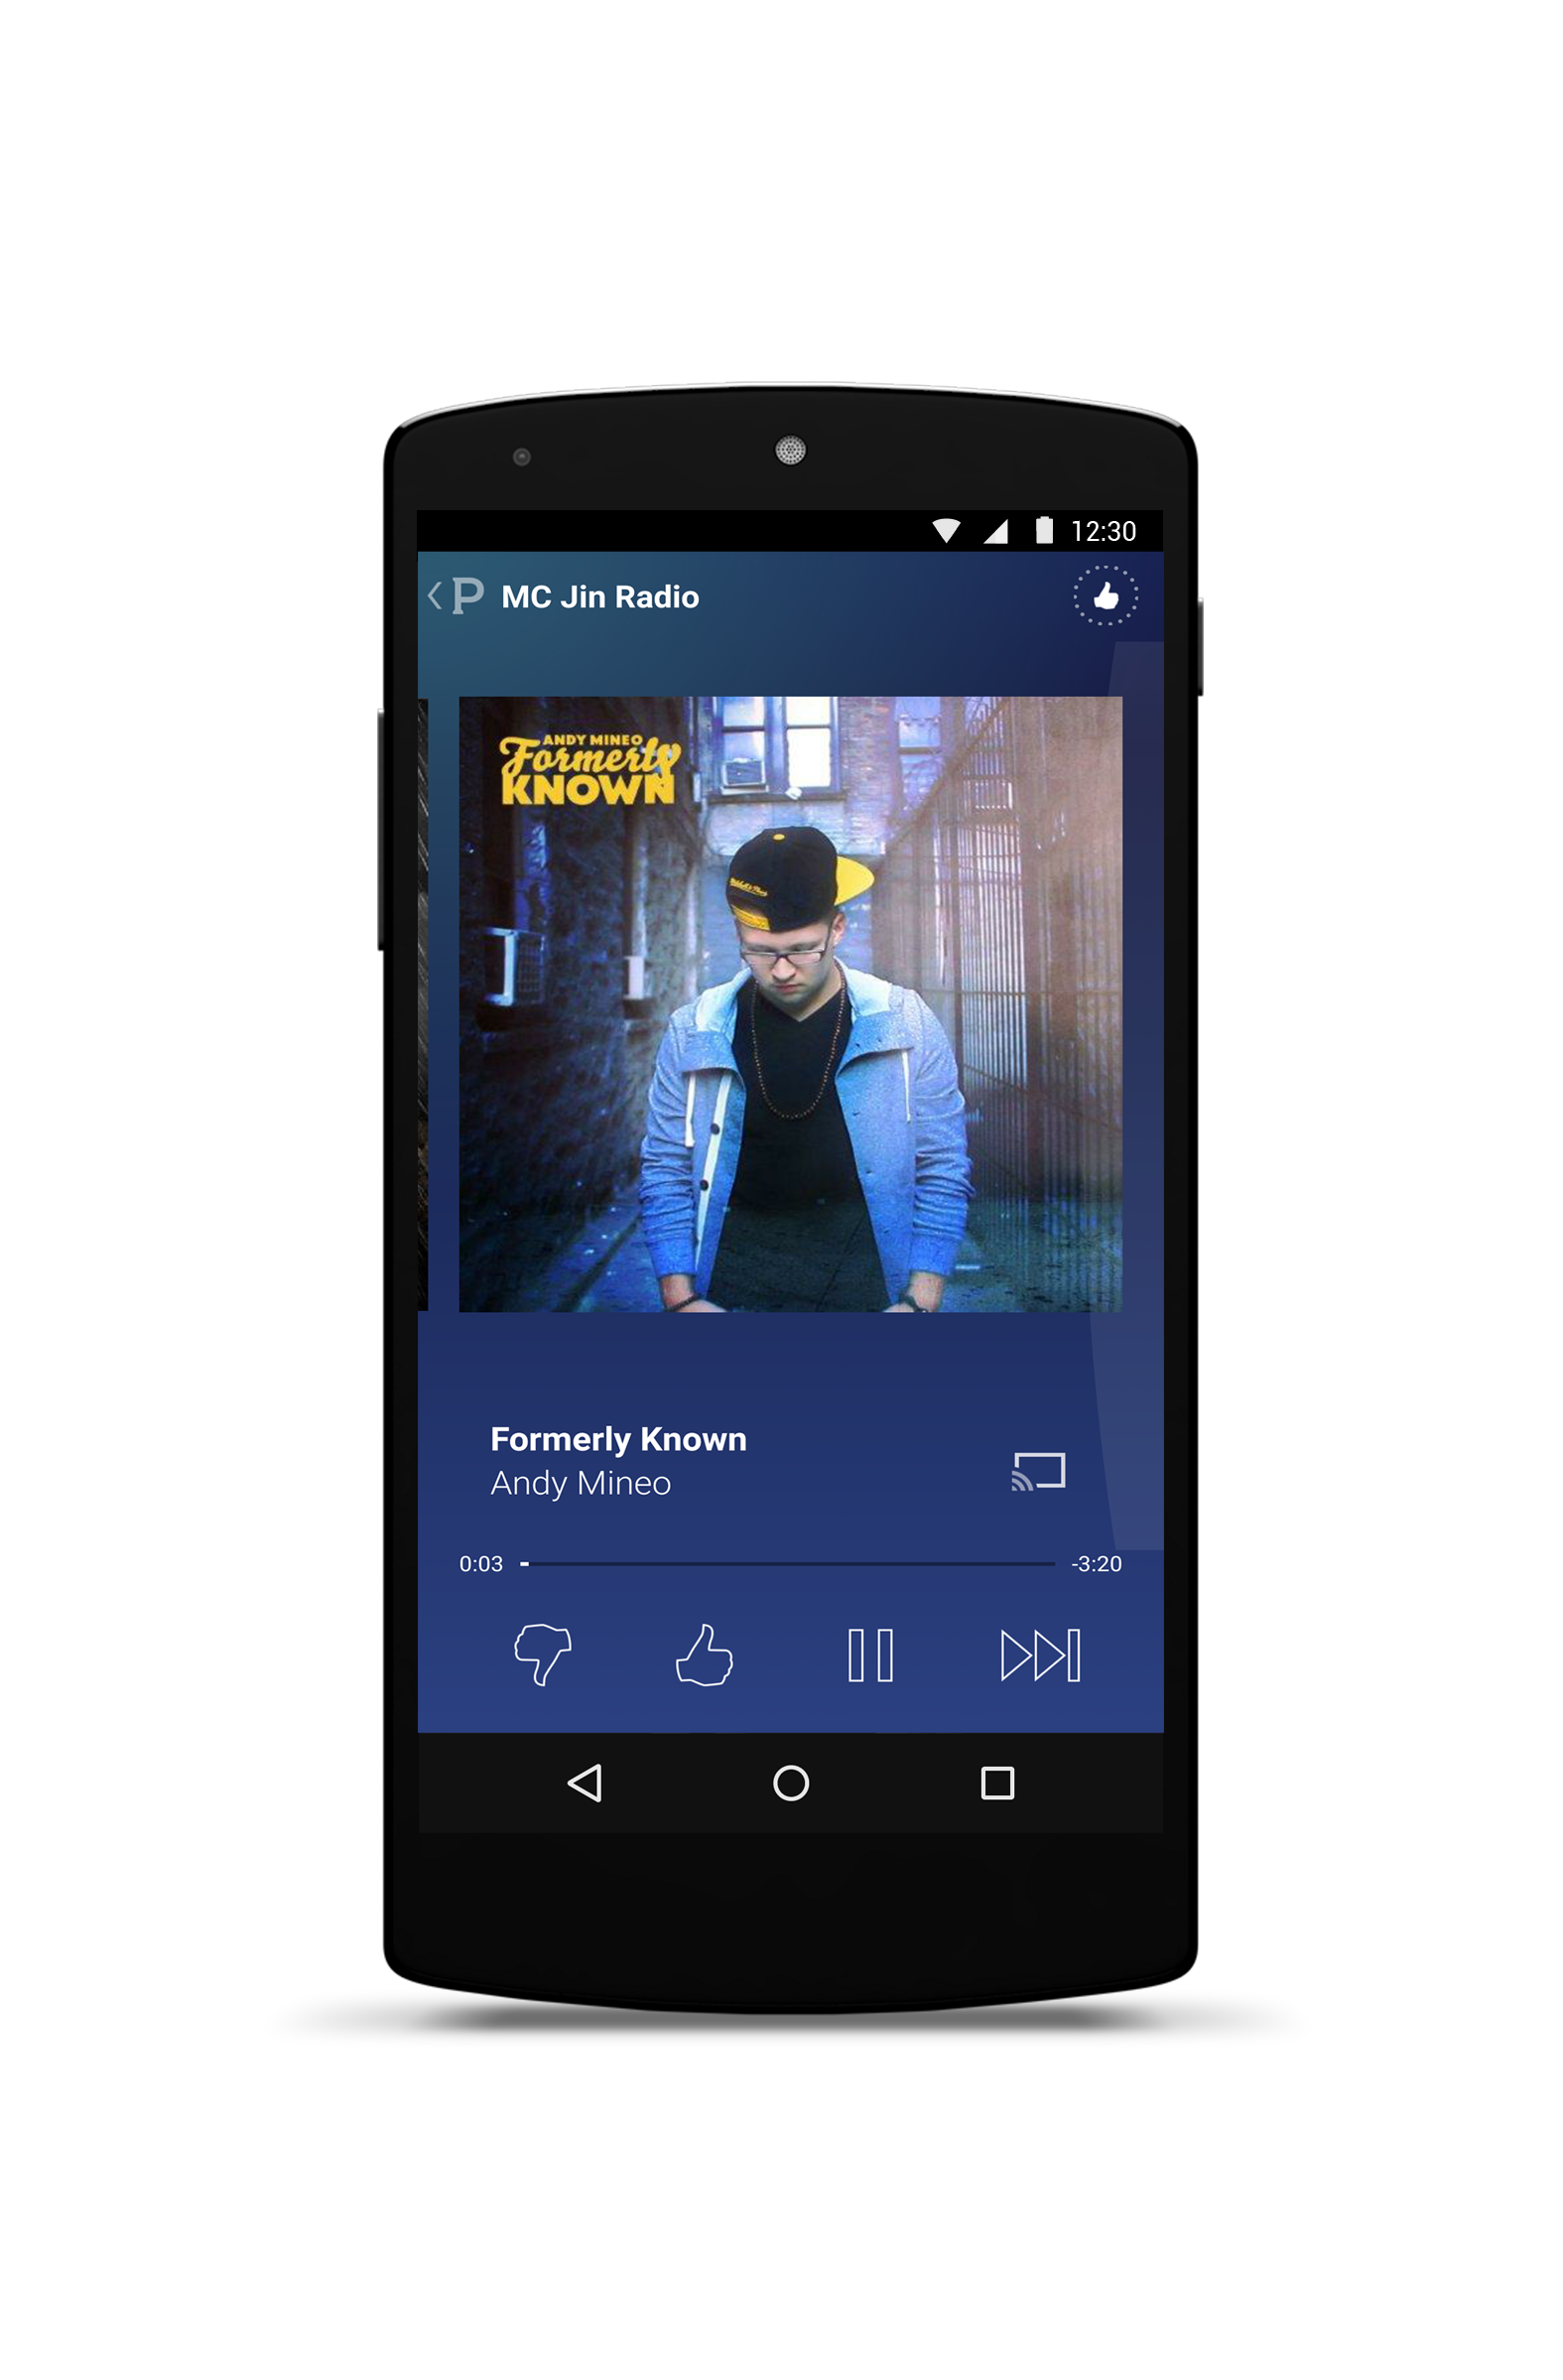 Phone Pandora App For Android Phone epic app battles of android pandora vs slacker androidguys andy mineo now playing